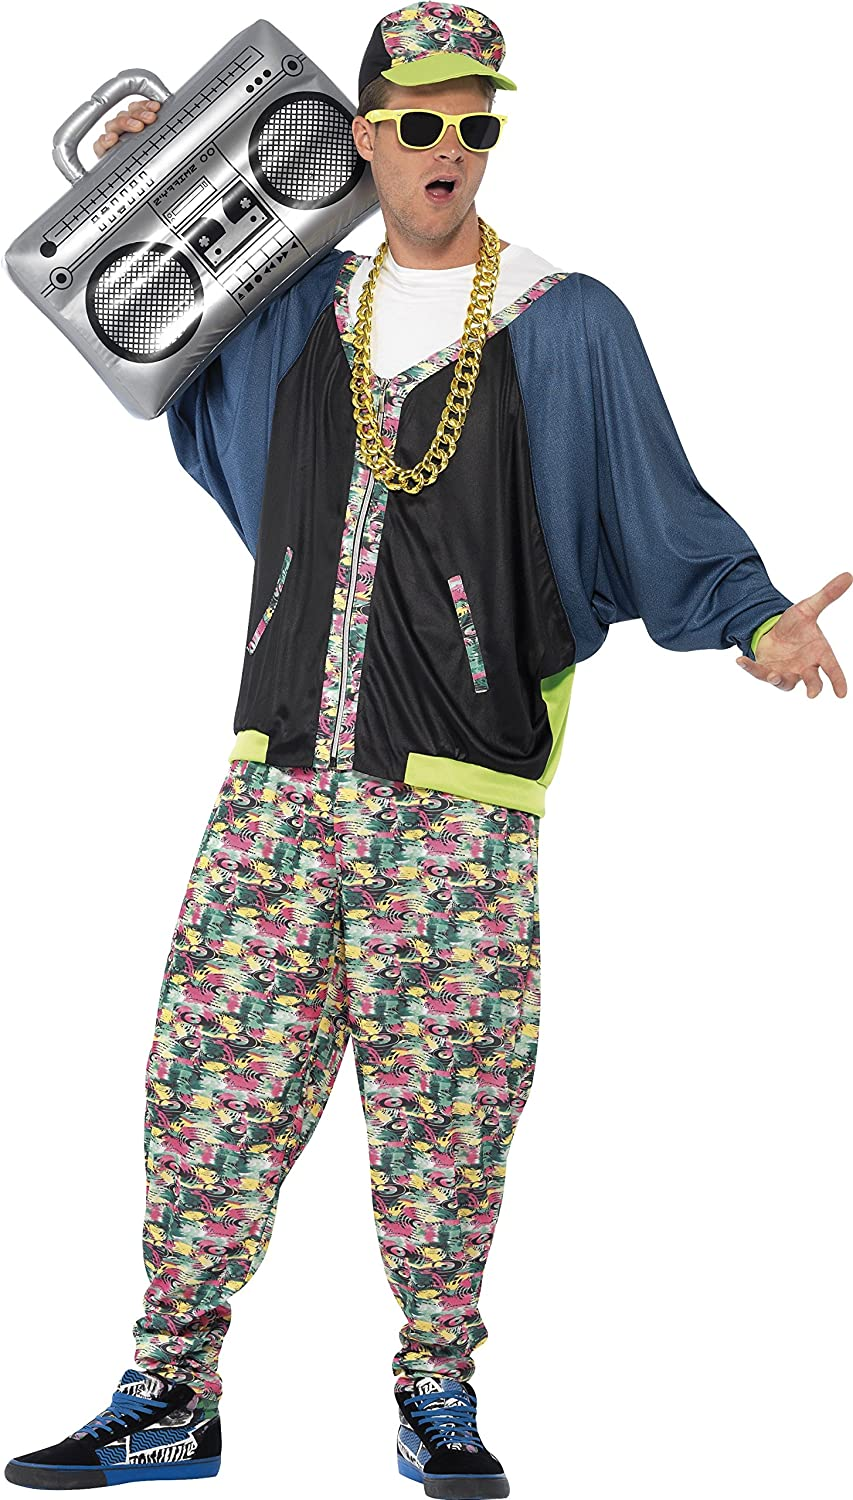 80's Hip Hop Star Costume. Accessories not included.